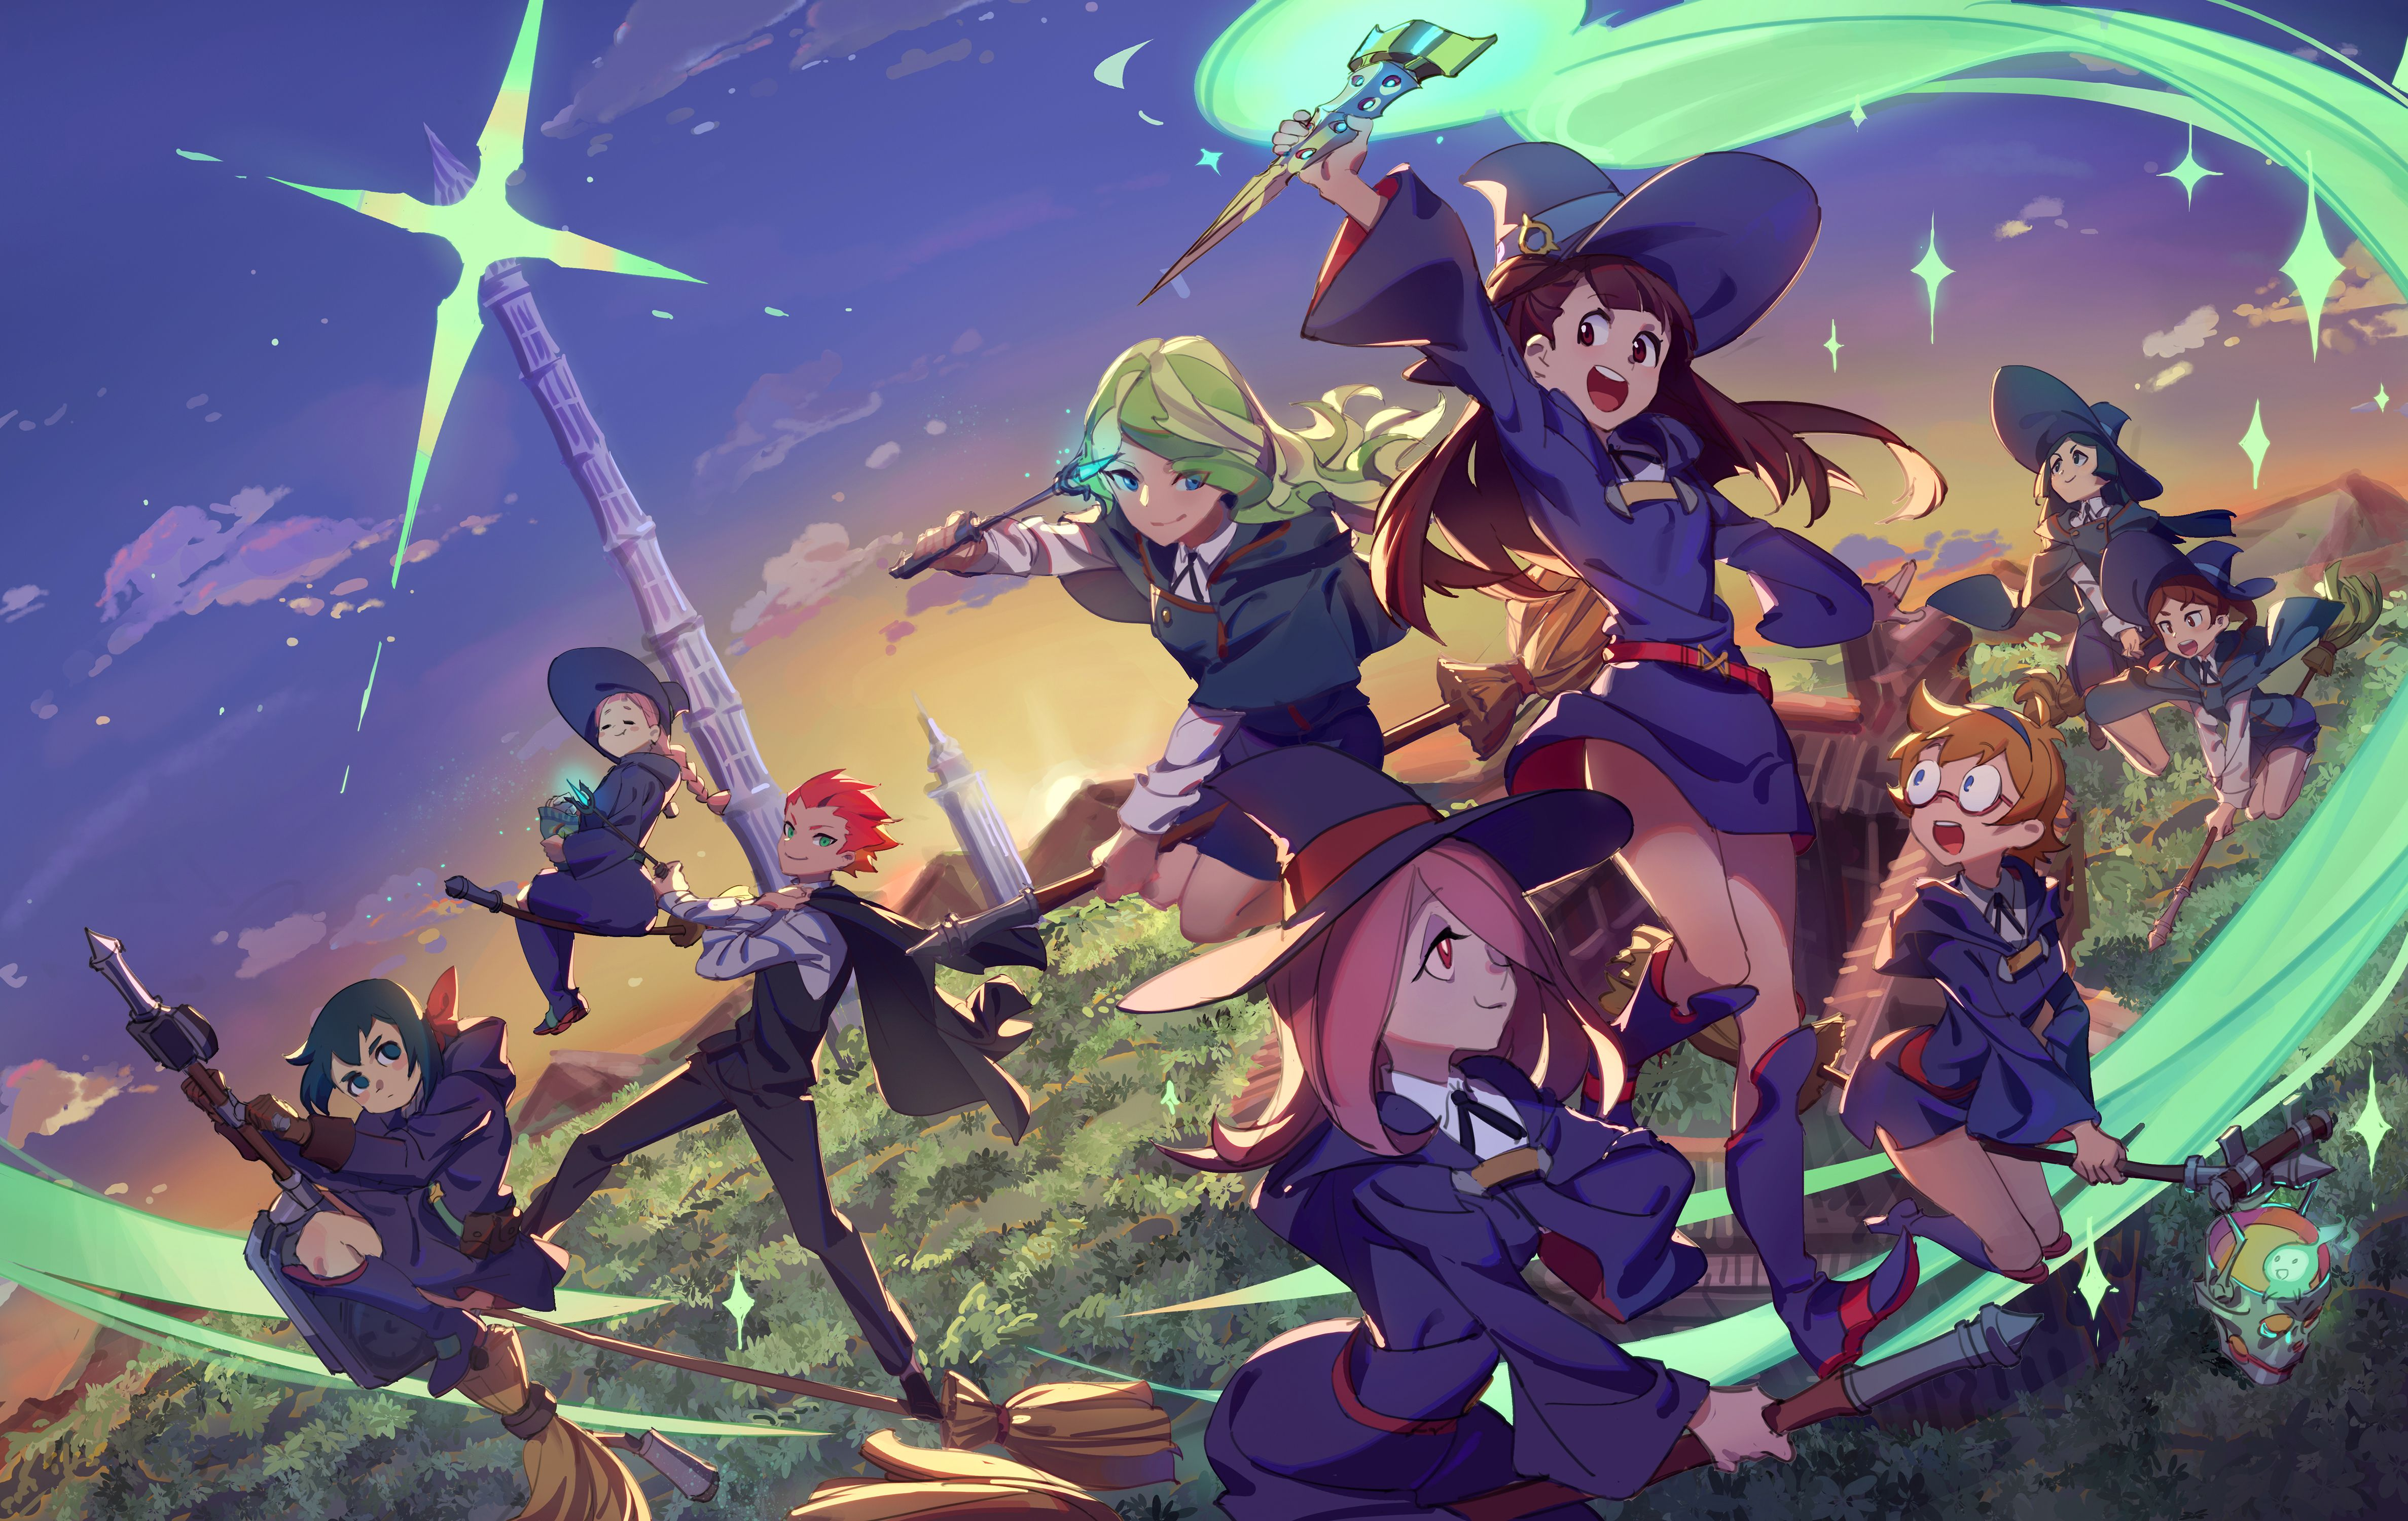 Little Witch Academia Wallpapers - Top Free Little Witch Academia  Backgrounds - WallpaperAccess